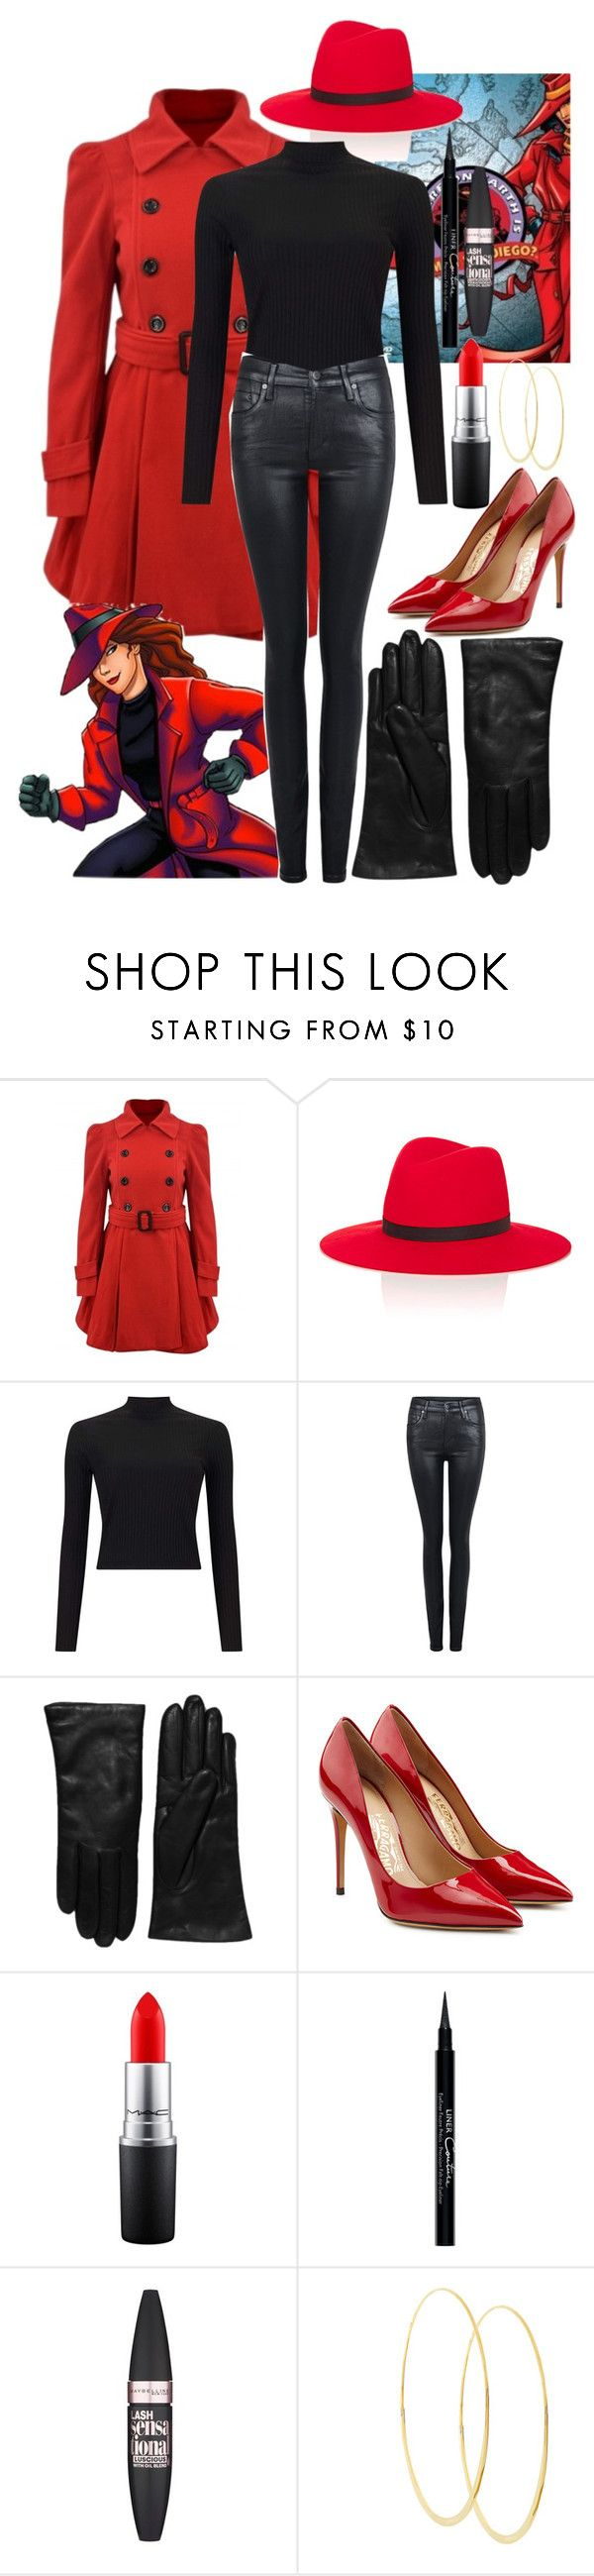 """""""Carmen Sandiego"""" by panenguin ❤ liked on Polyvore featuring Janessa Leone, Miss Selfridge, Citizens of Humanity, Saks Fifth Avenue Collection, Salvatore Ferragamo, MAC Cosmetics, Givenchy, Maybelline, Lana and Halloween"""